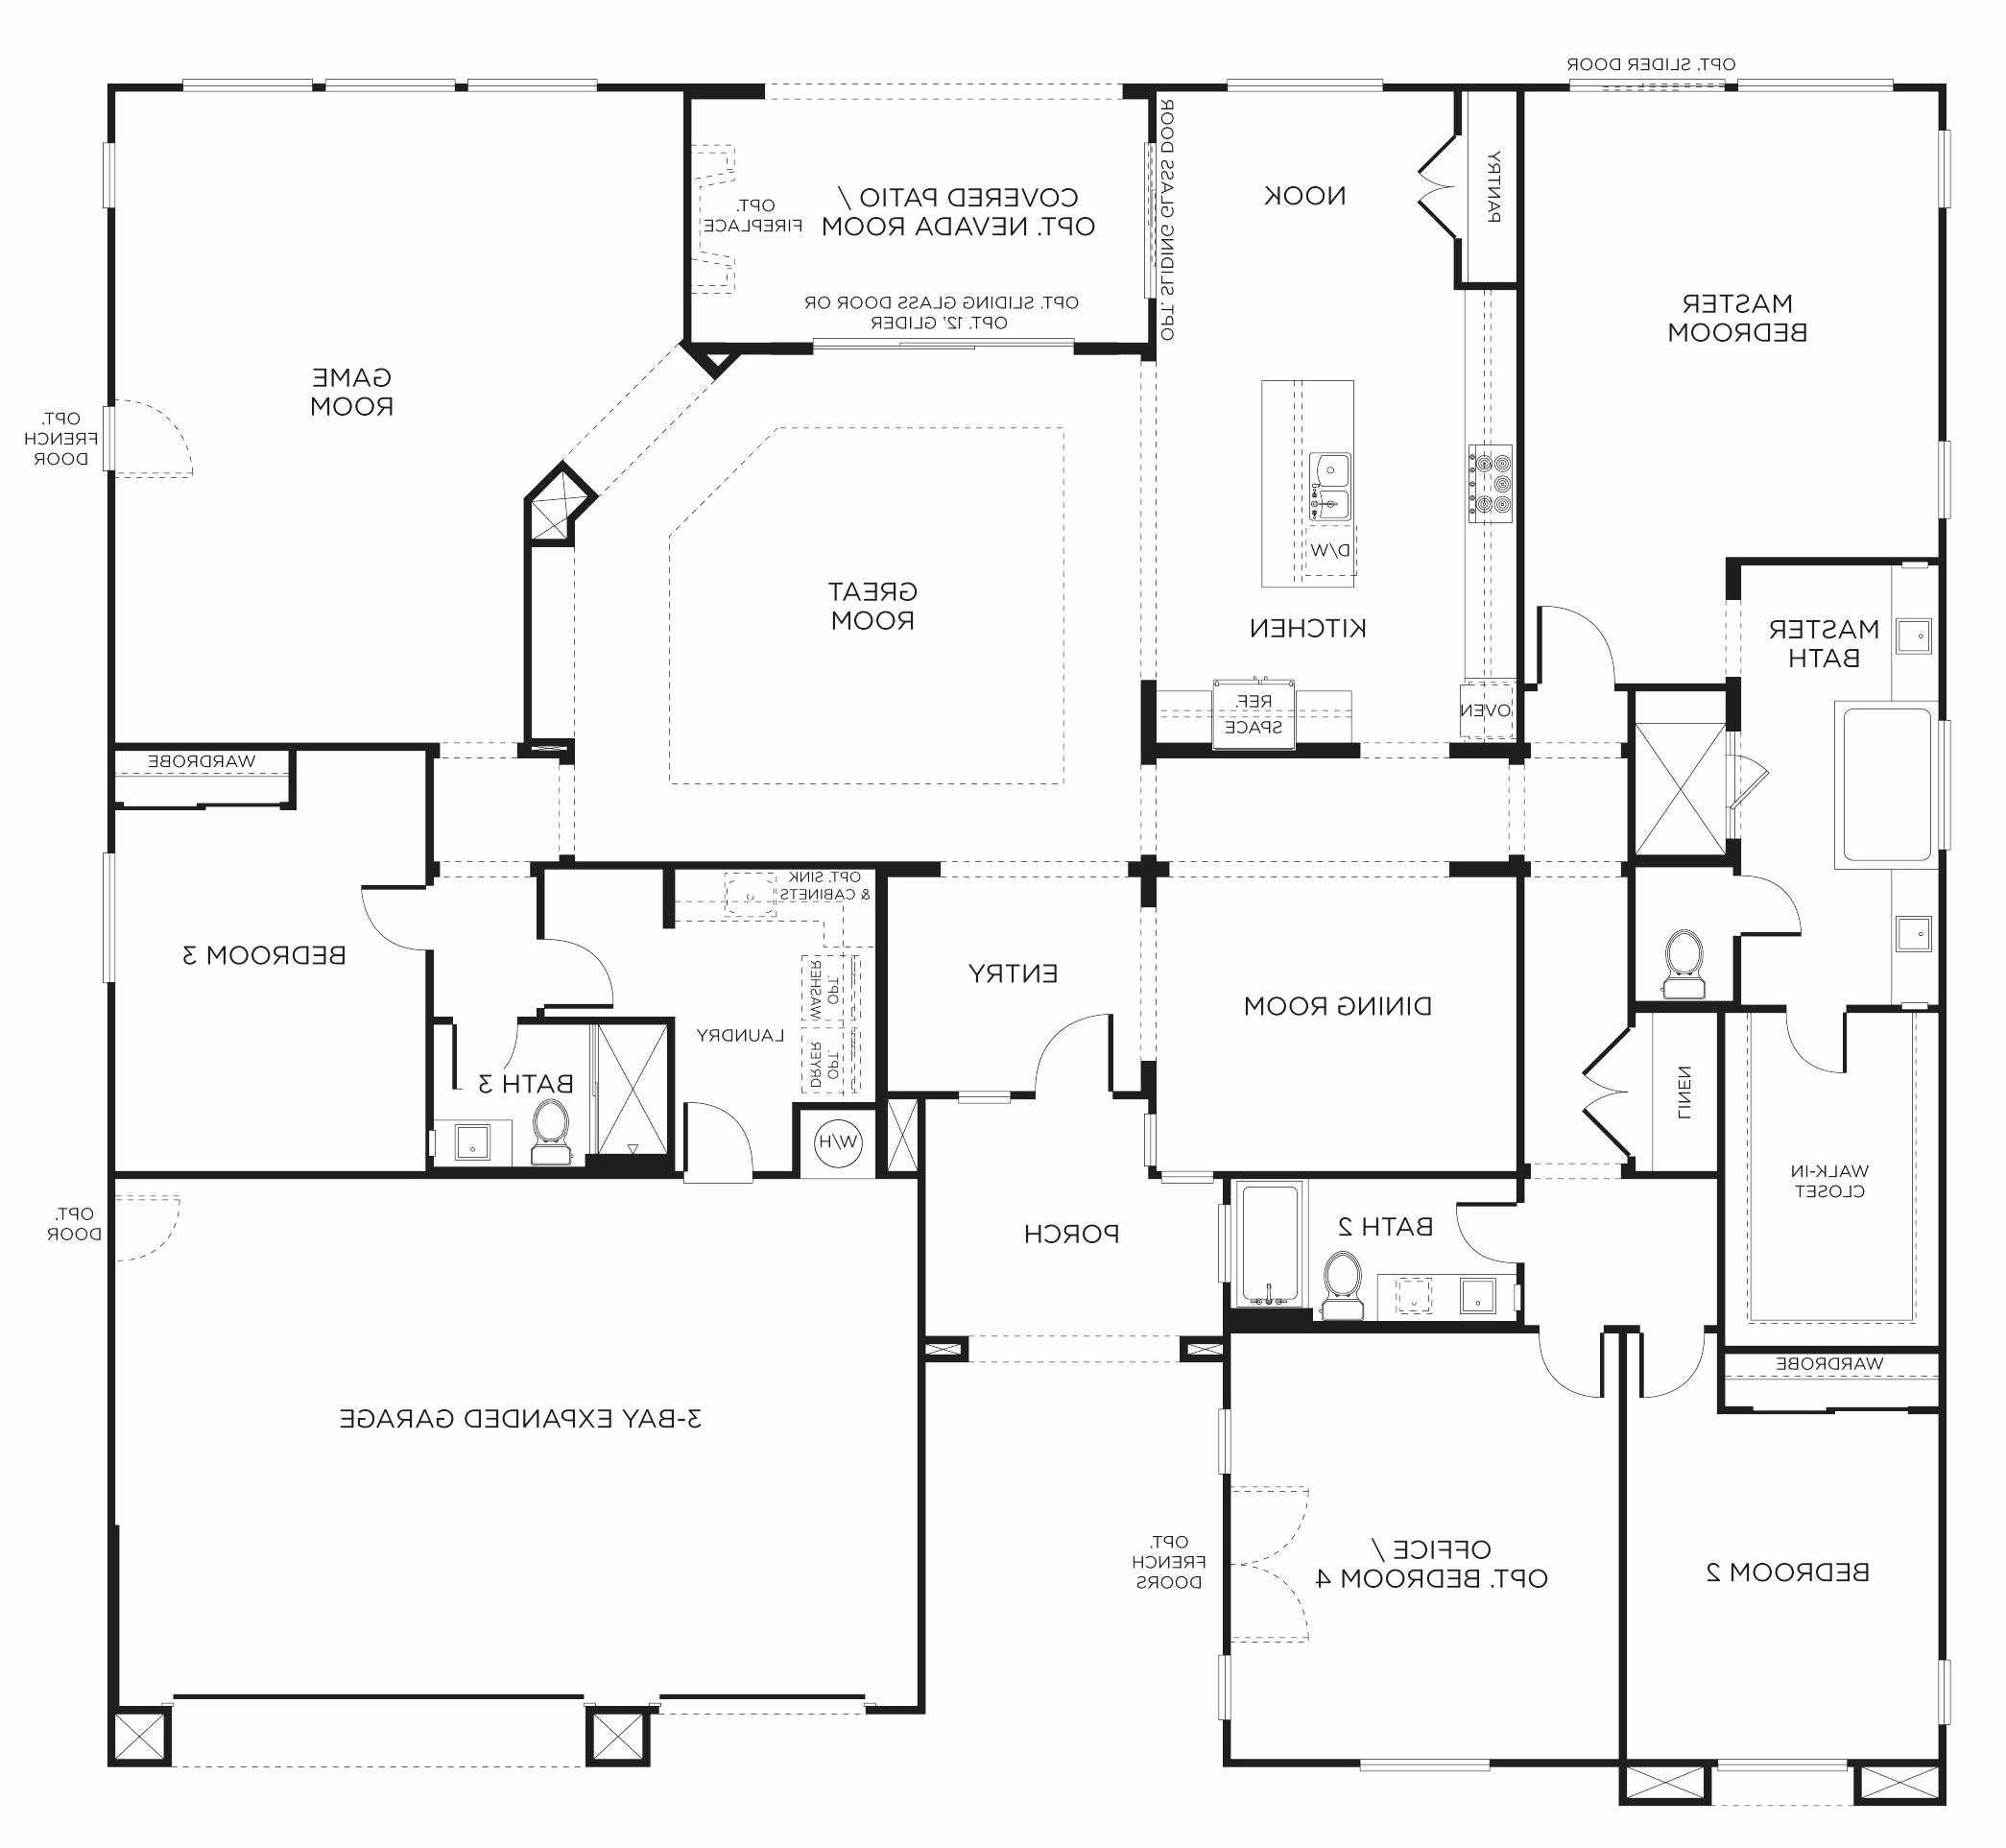 Open Concept Single Story Farmhouse Plans Awesome Open Concept Single Story Farmhouse Pla Farmhouse Floor Plans One Storey House Building House Plans Designs